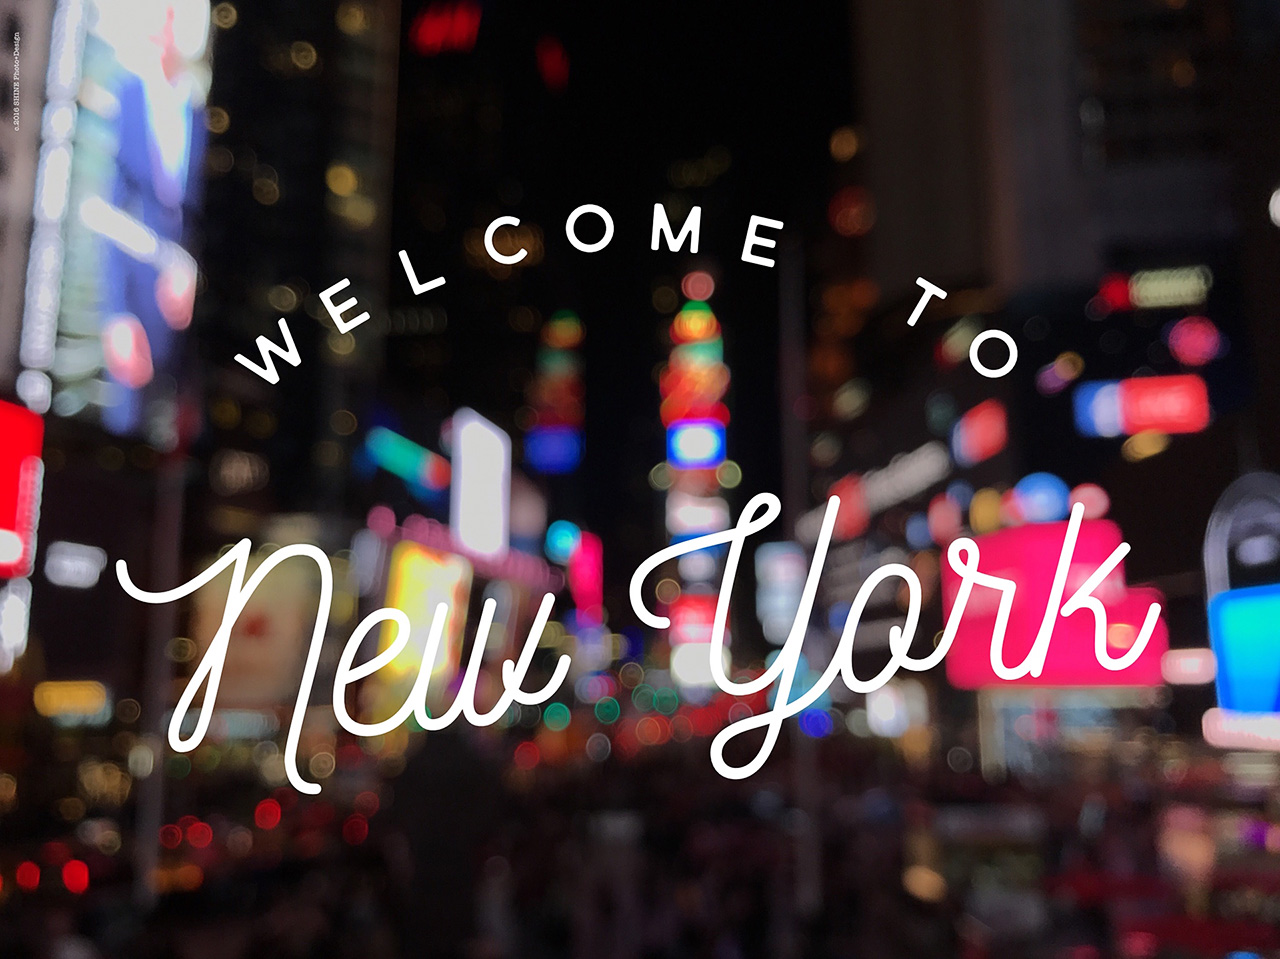 Welcome to New York by SHINE Photo+Design